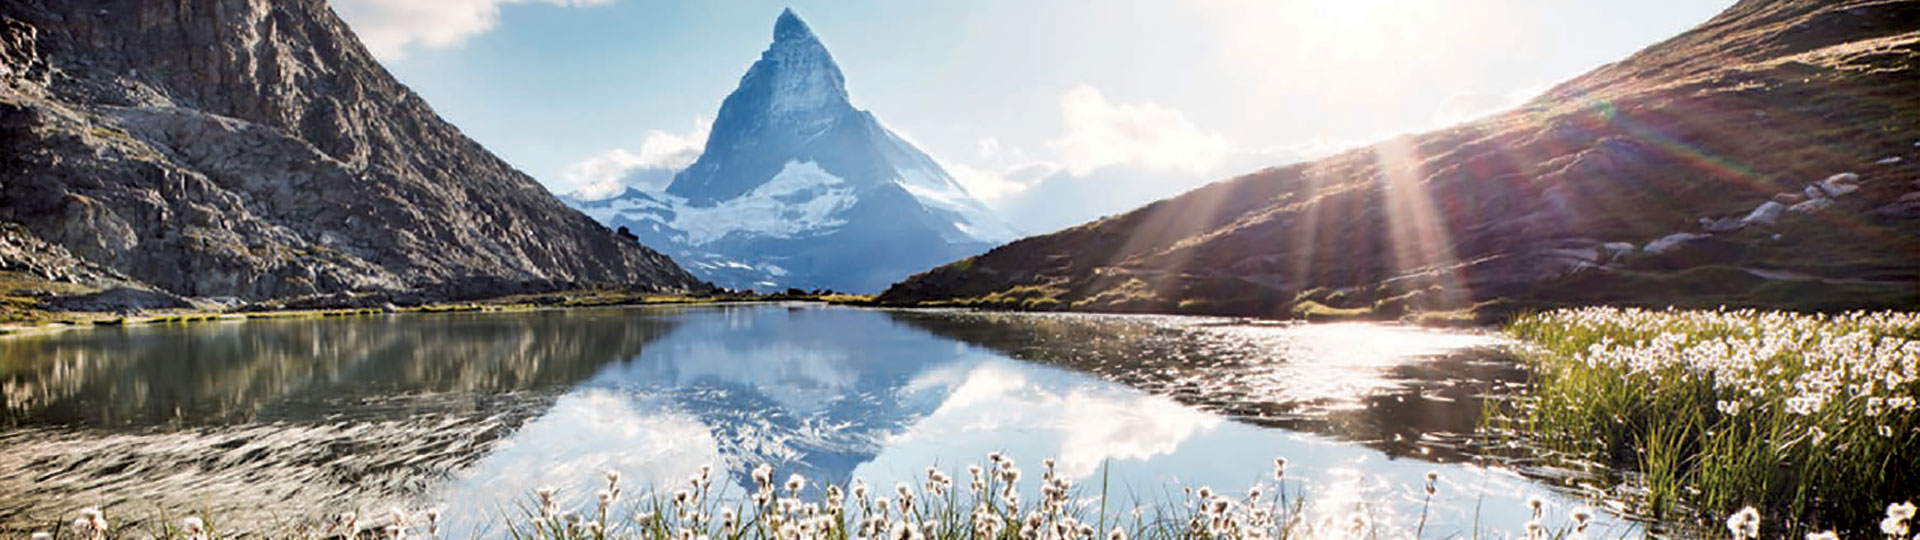 Lake and Mountain in Switzerland